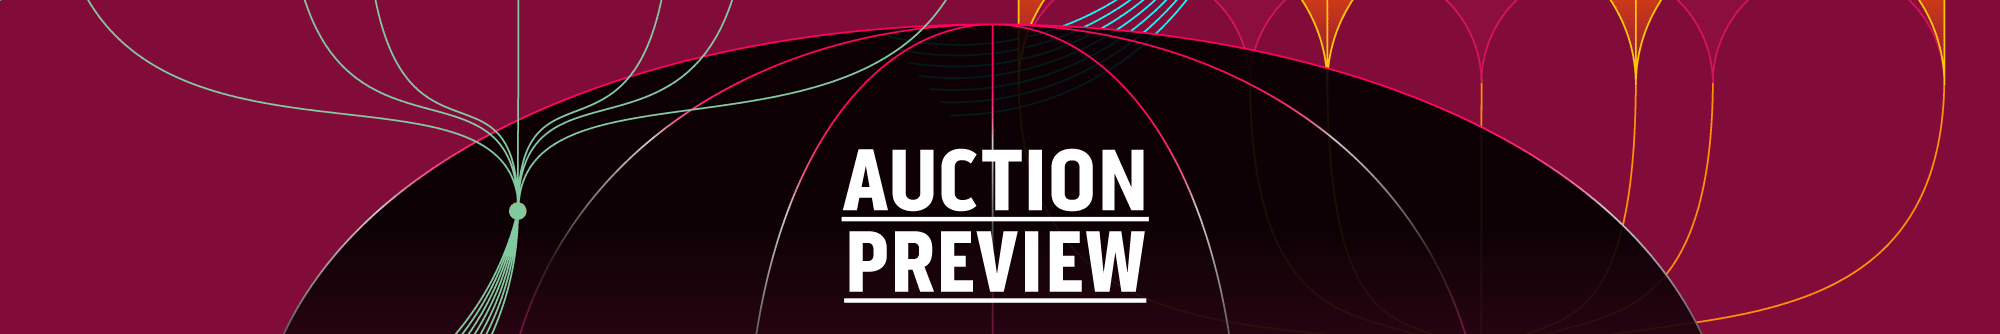 Auction Preview